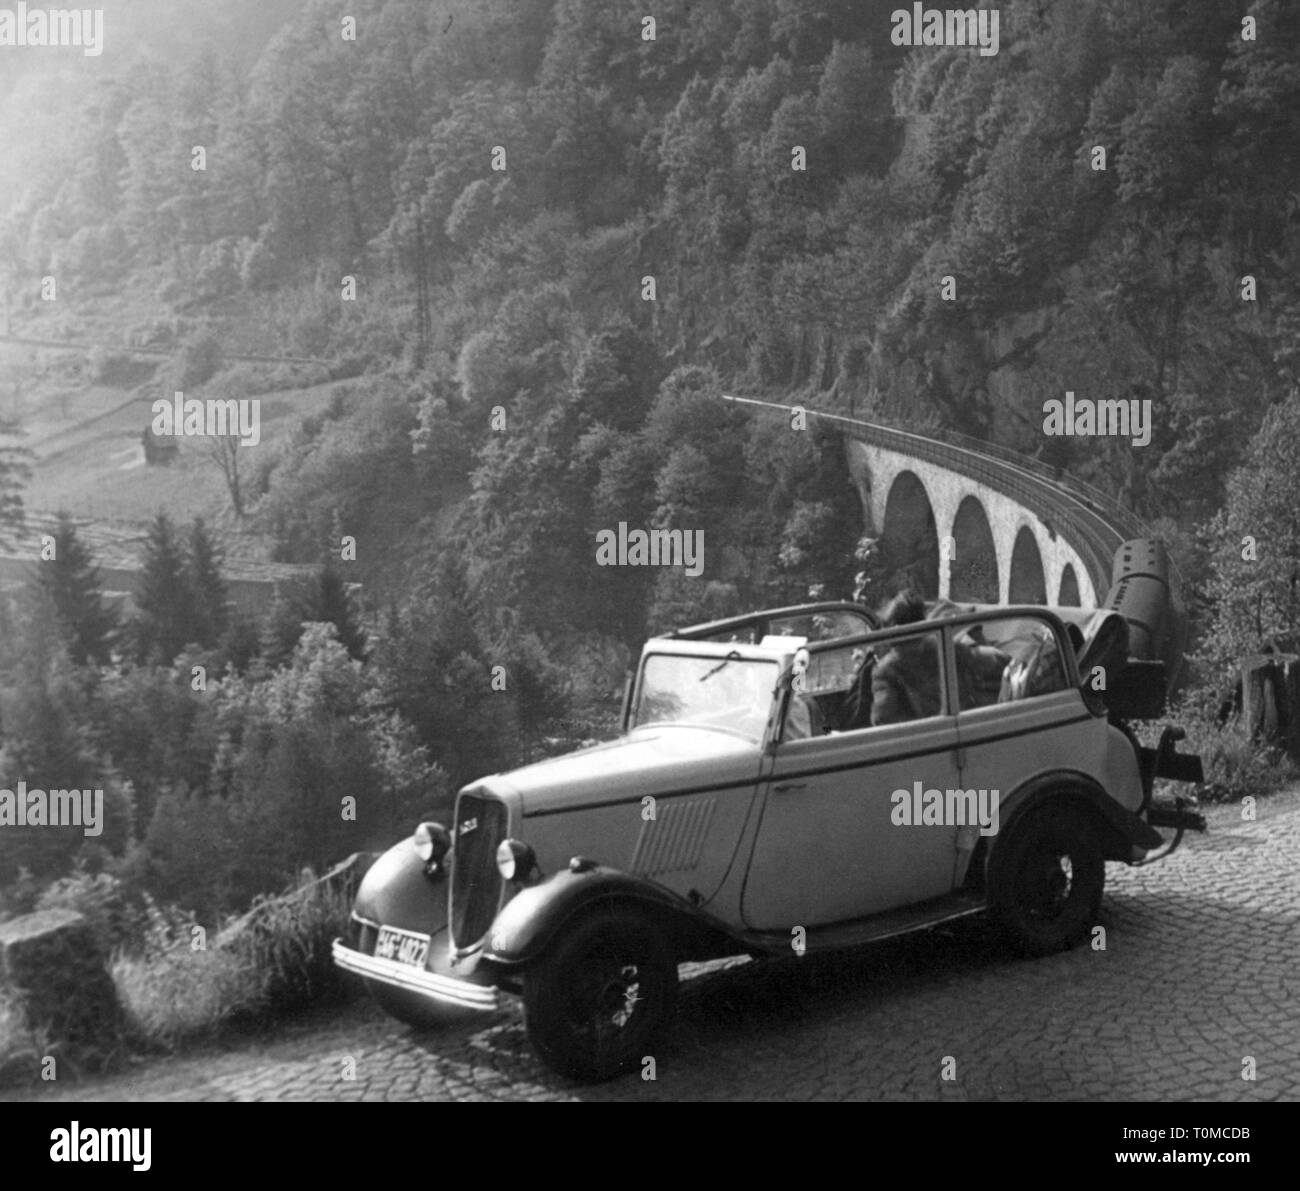 transport / transportation, cars, vehicle variants, Ford V8 Model 40, view from left ahead, Muerz Valley, Styria, Austria, 1952, Additional-Rights-Clearance-Info-Not-Available - Stock Image